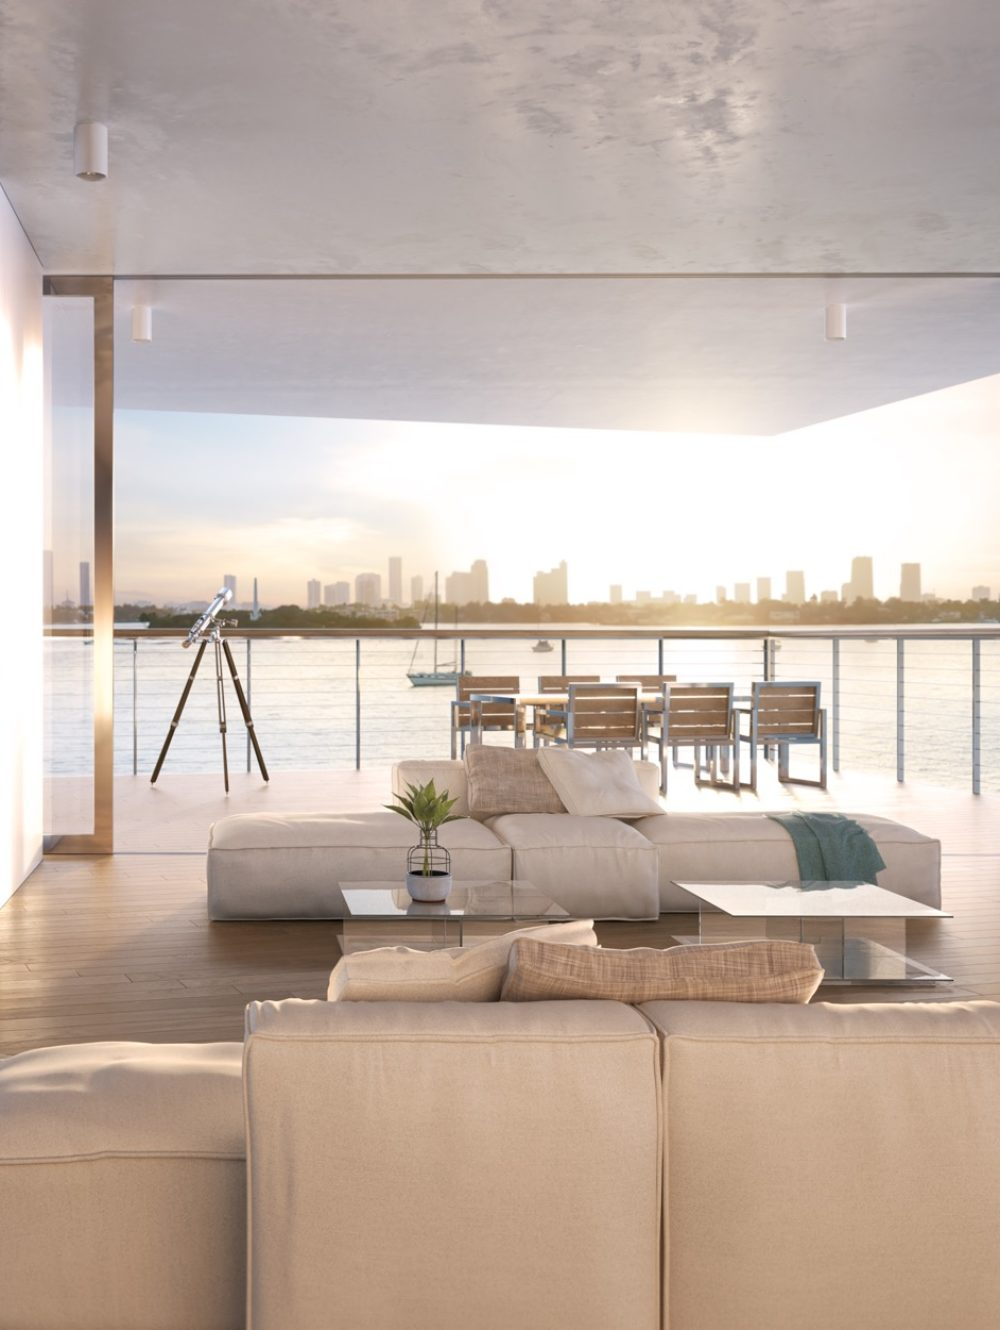 Condo living room at Monad Terrace in Miami. Couch, deck, and floor-to-ceiling windows with views of Biscayne Bay.